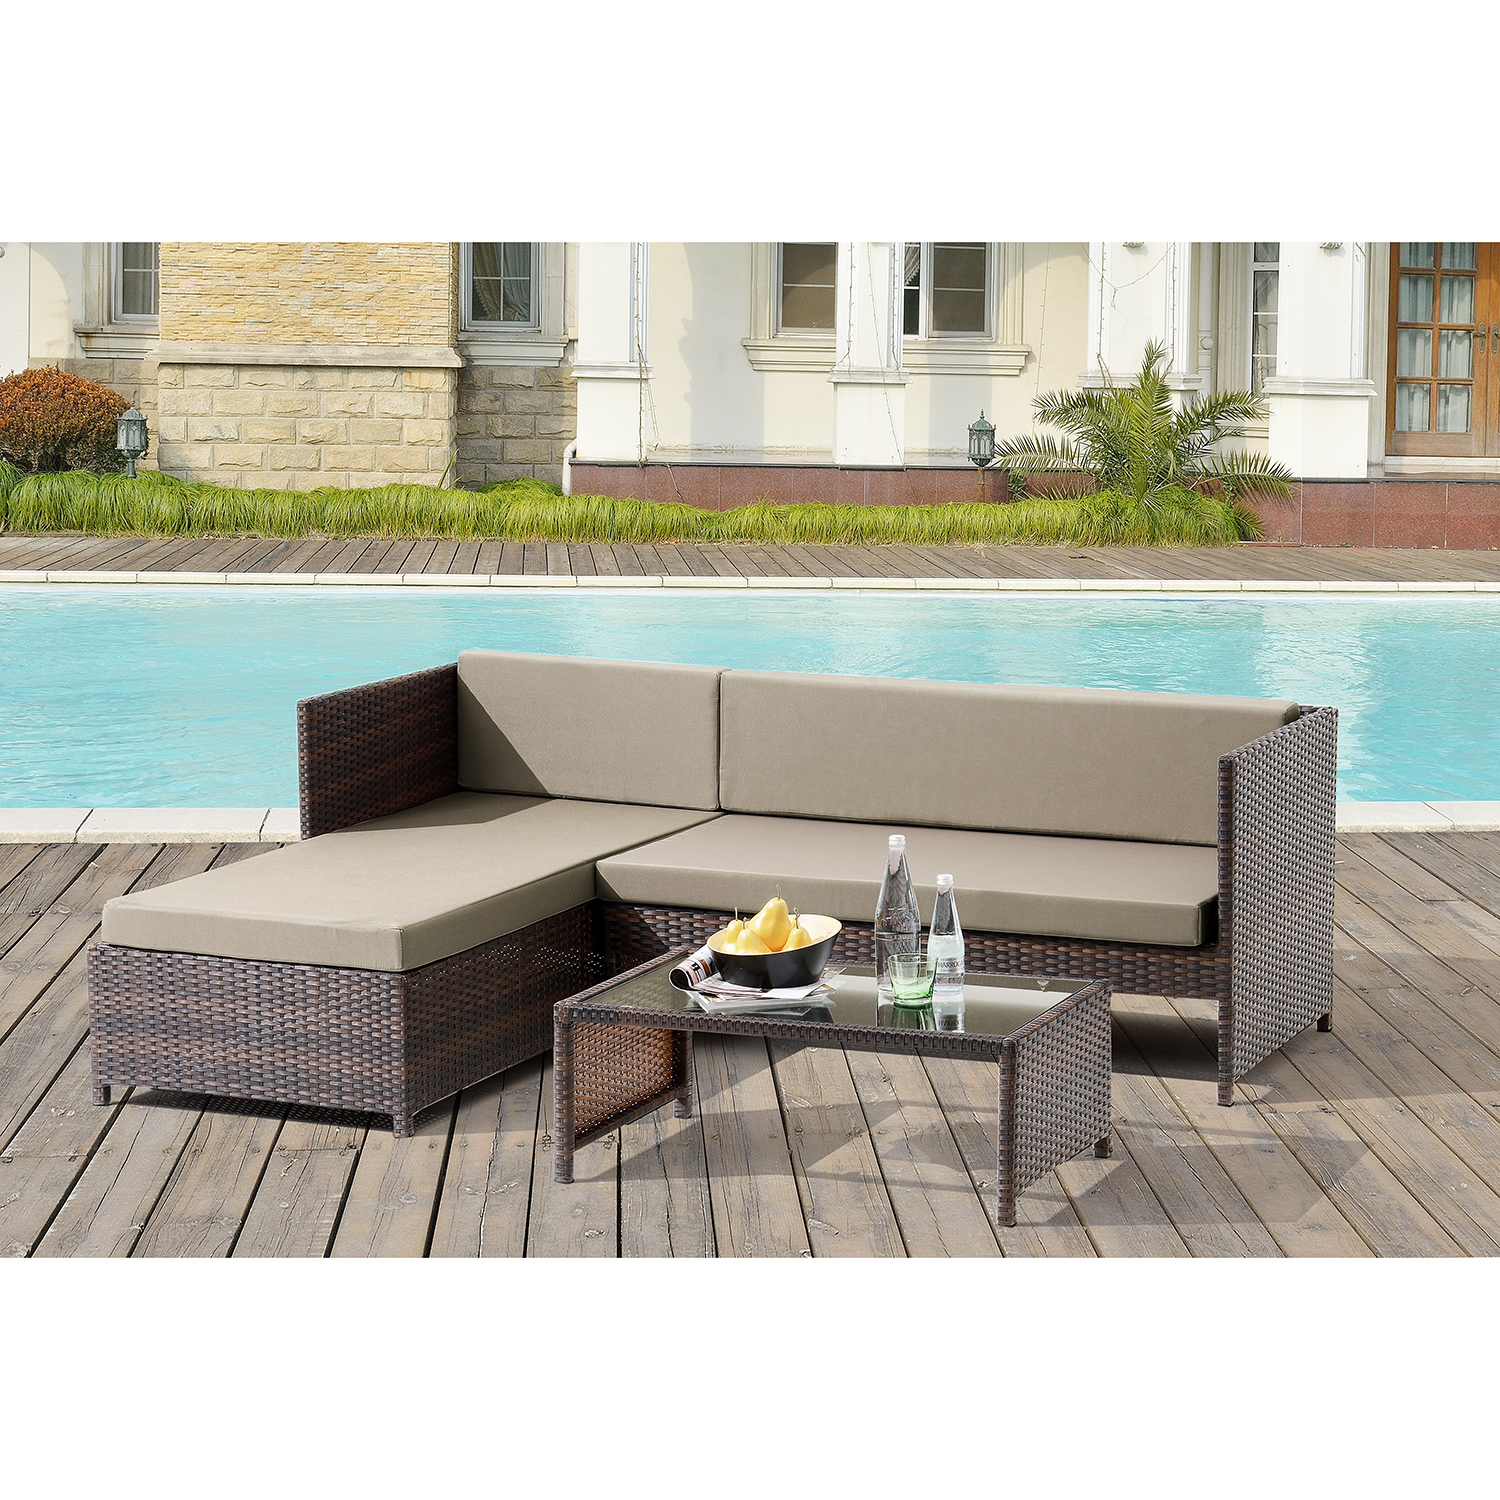 Qvc Programm Gartenmobel :  POLY RATTAN Lounge Corner Sofa + Table Garden Set Polyrattan Furniture